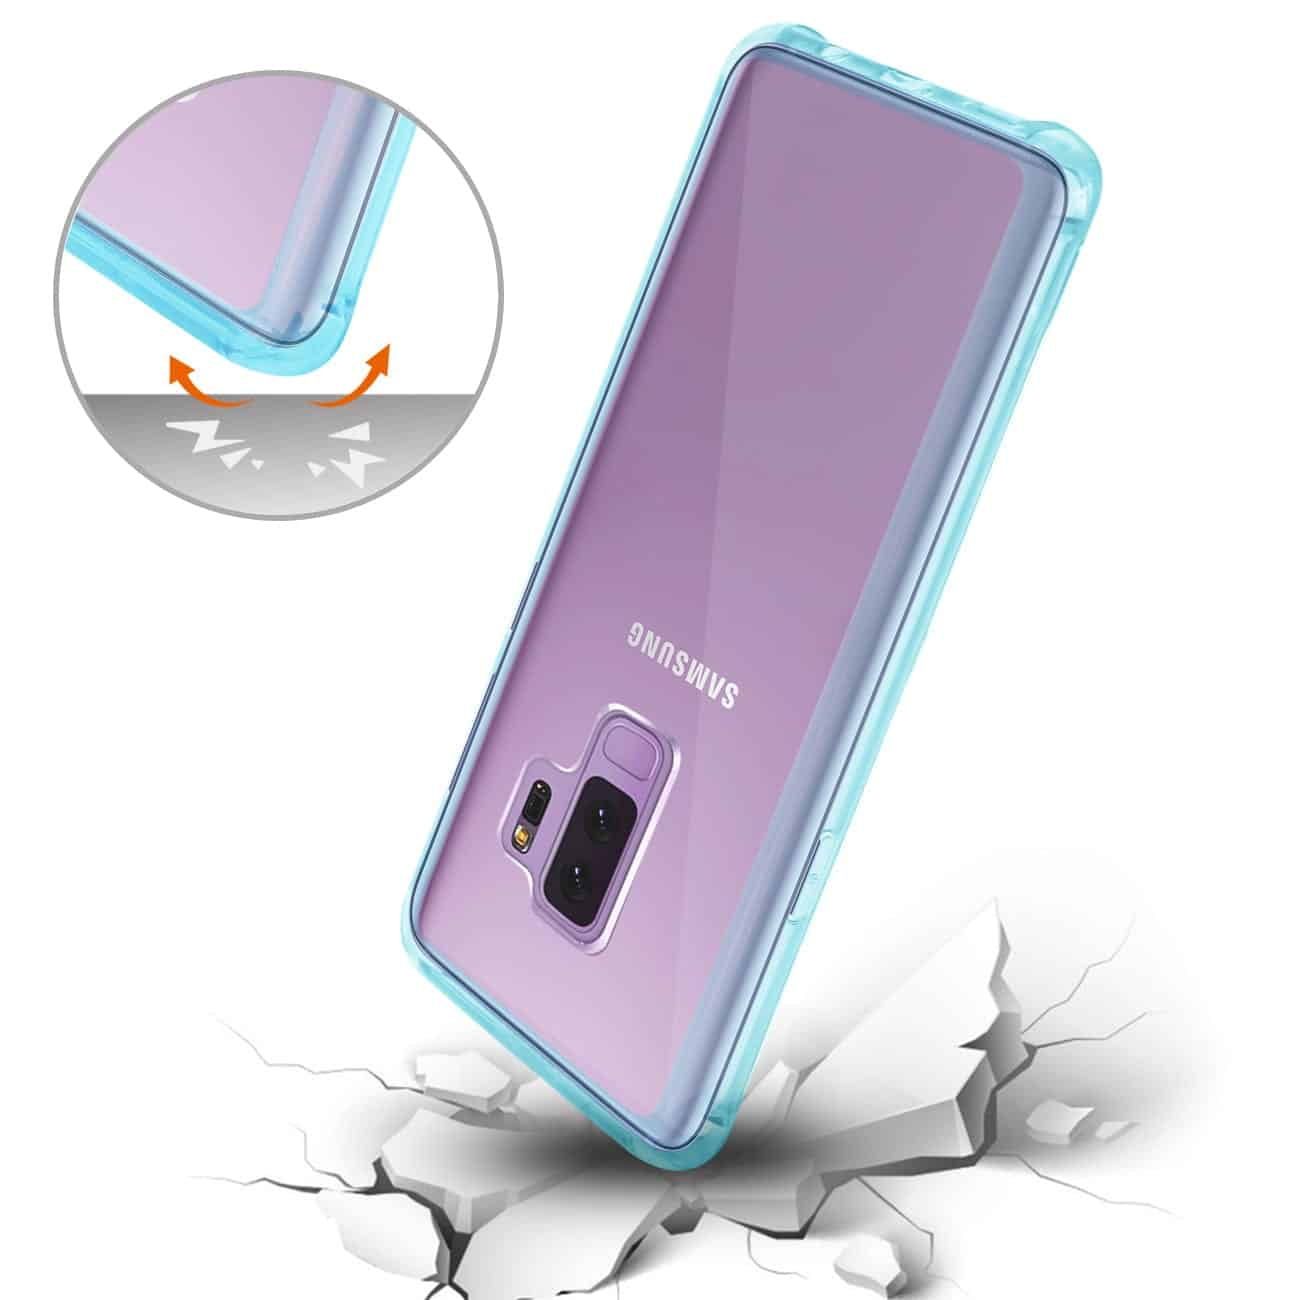 Samsung Galaxy S9 Plus Clear Bumper Case With Air Cushion Protection In Clear Navy